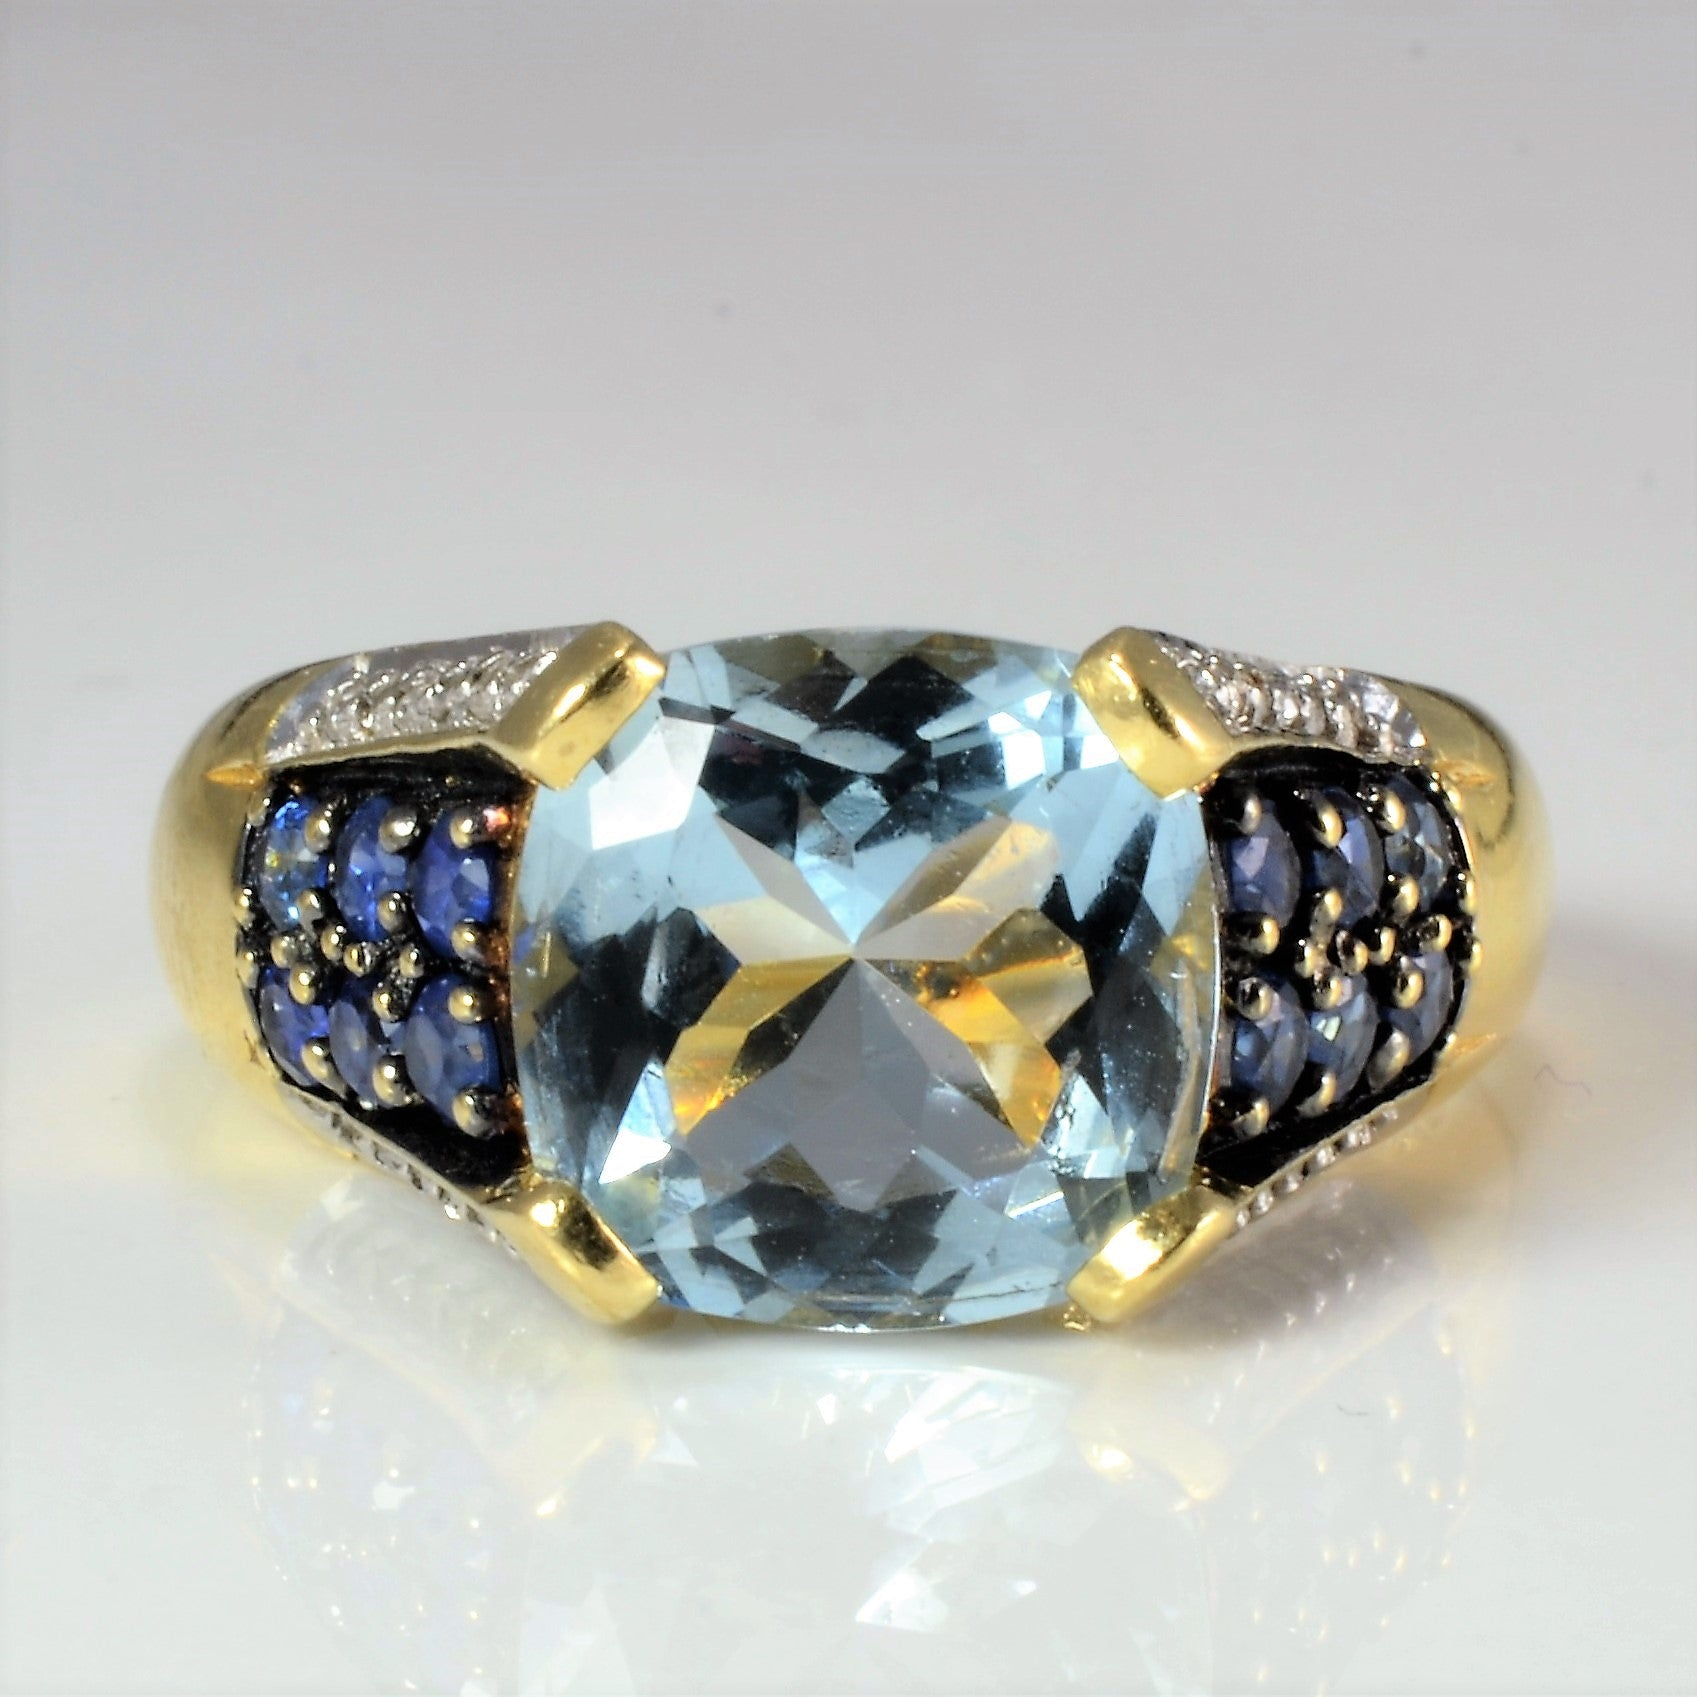 High set Multi Gemstone Ladies Ring | 0.12 ctw, SZ 5.75 |